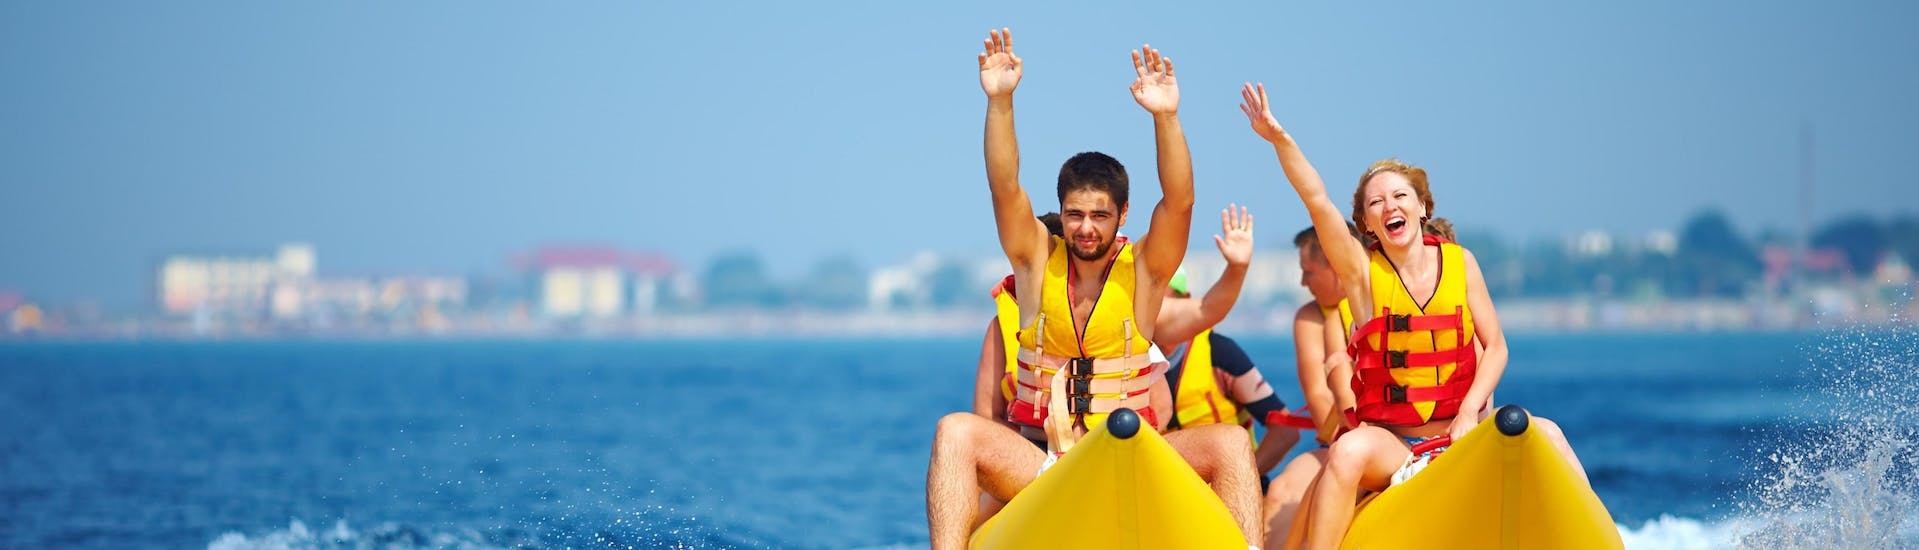 A group of friends riding a banana boat in the holiday destination of Puerto Colón.